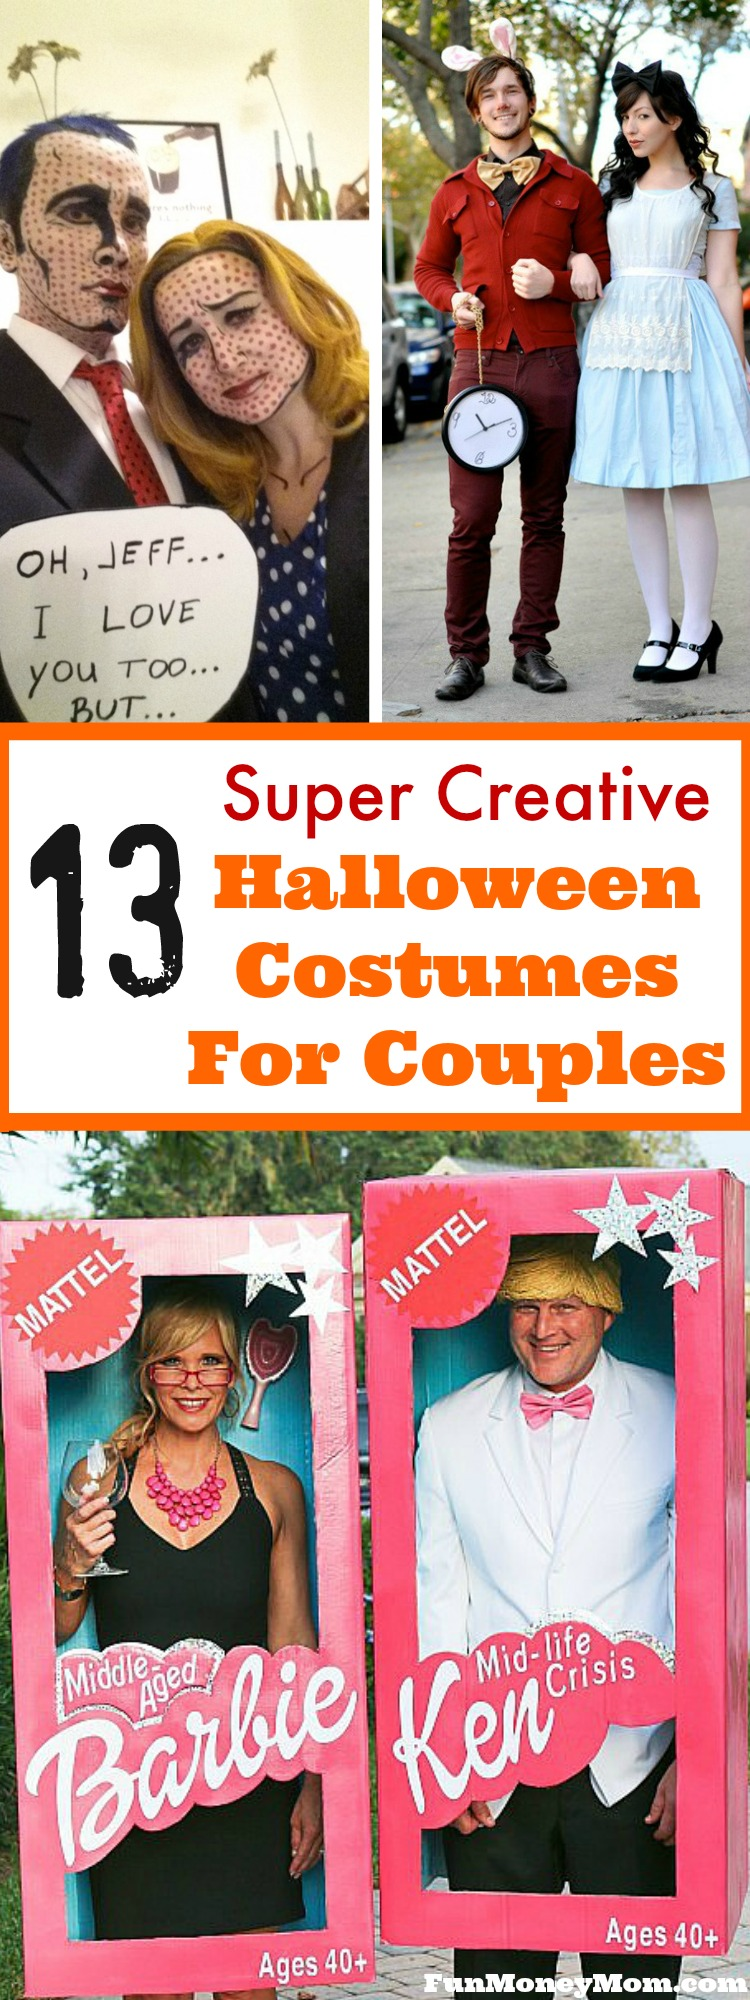 Need to come up with a couples costume for Halloween? These amazing Halloween costumes are both fun and creative and will be a hit at any Halloween party!